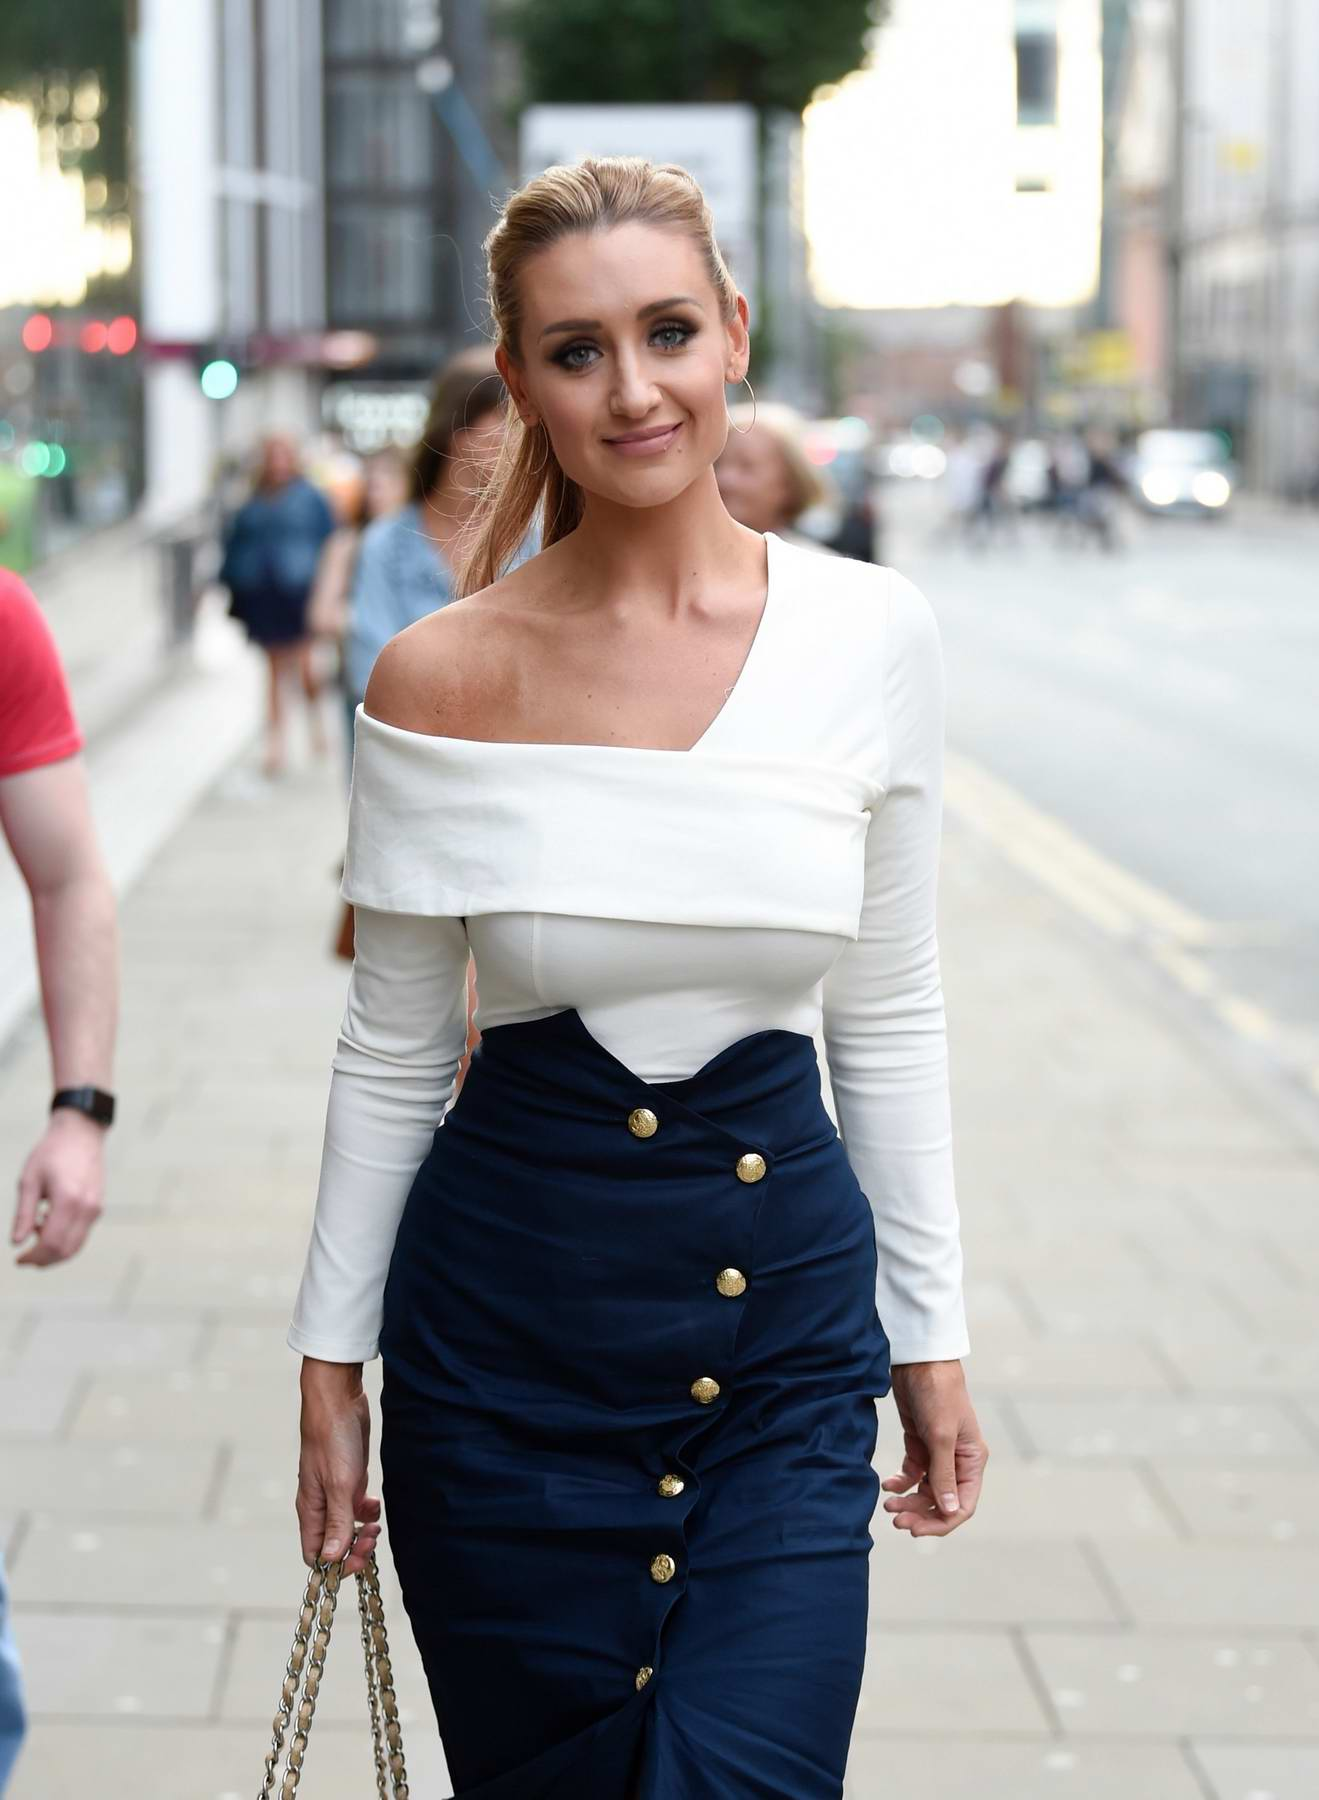 Catherine Tyldesley seen enjoying girls night out at Be Impossible Bar and Restaurant in Manchester